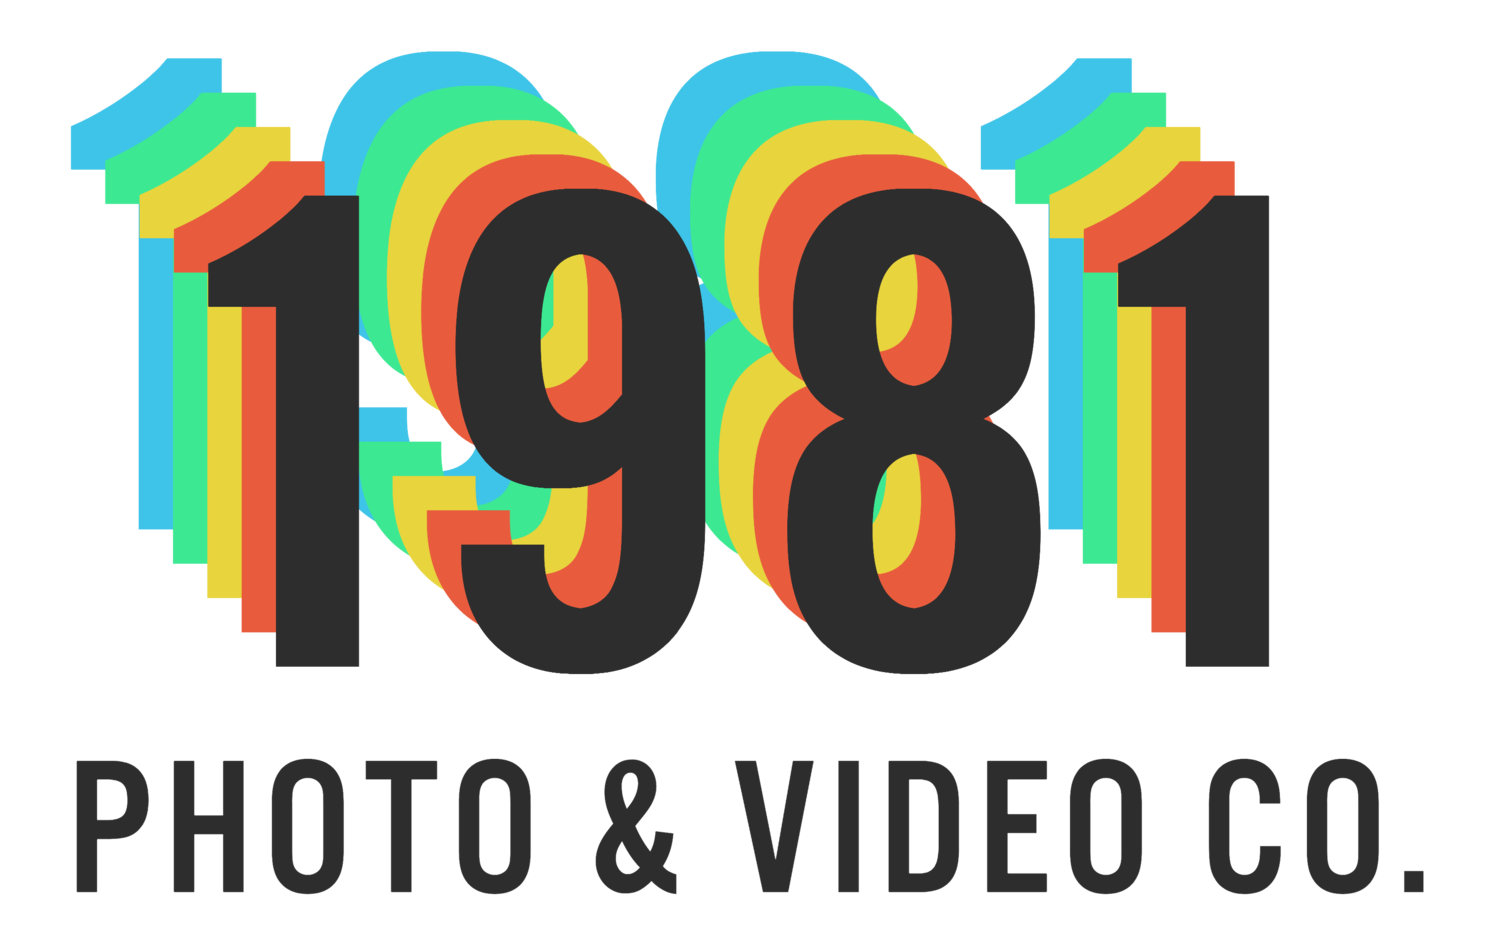 1981 Photo & Video Co.